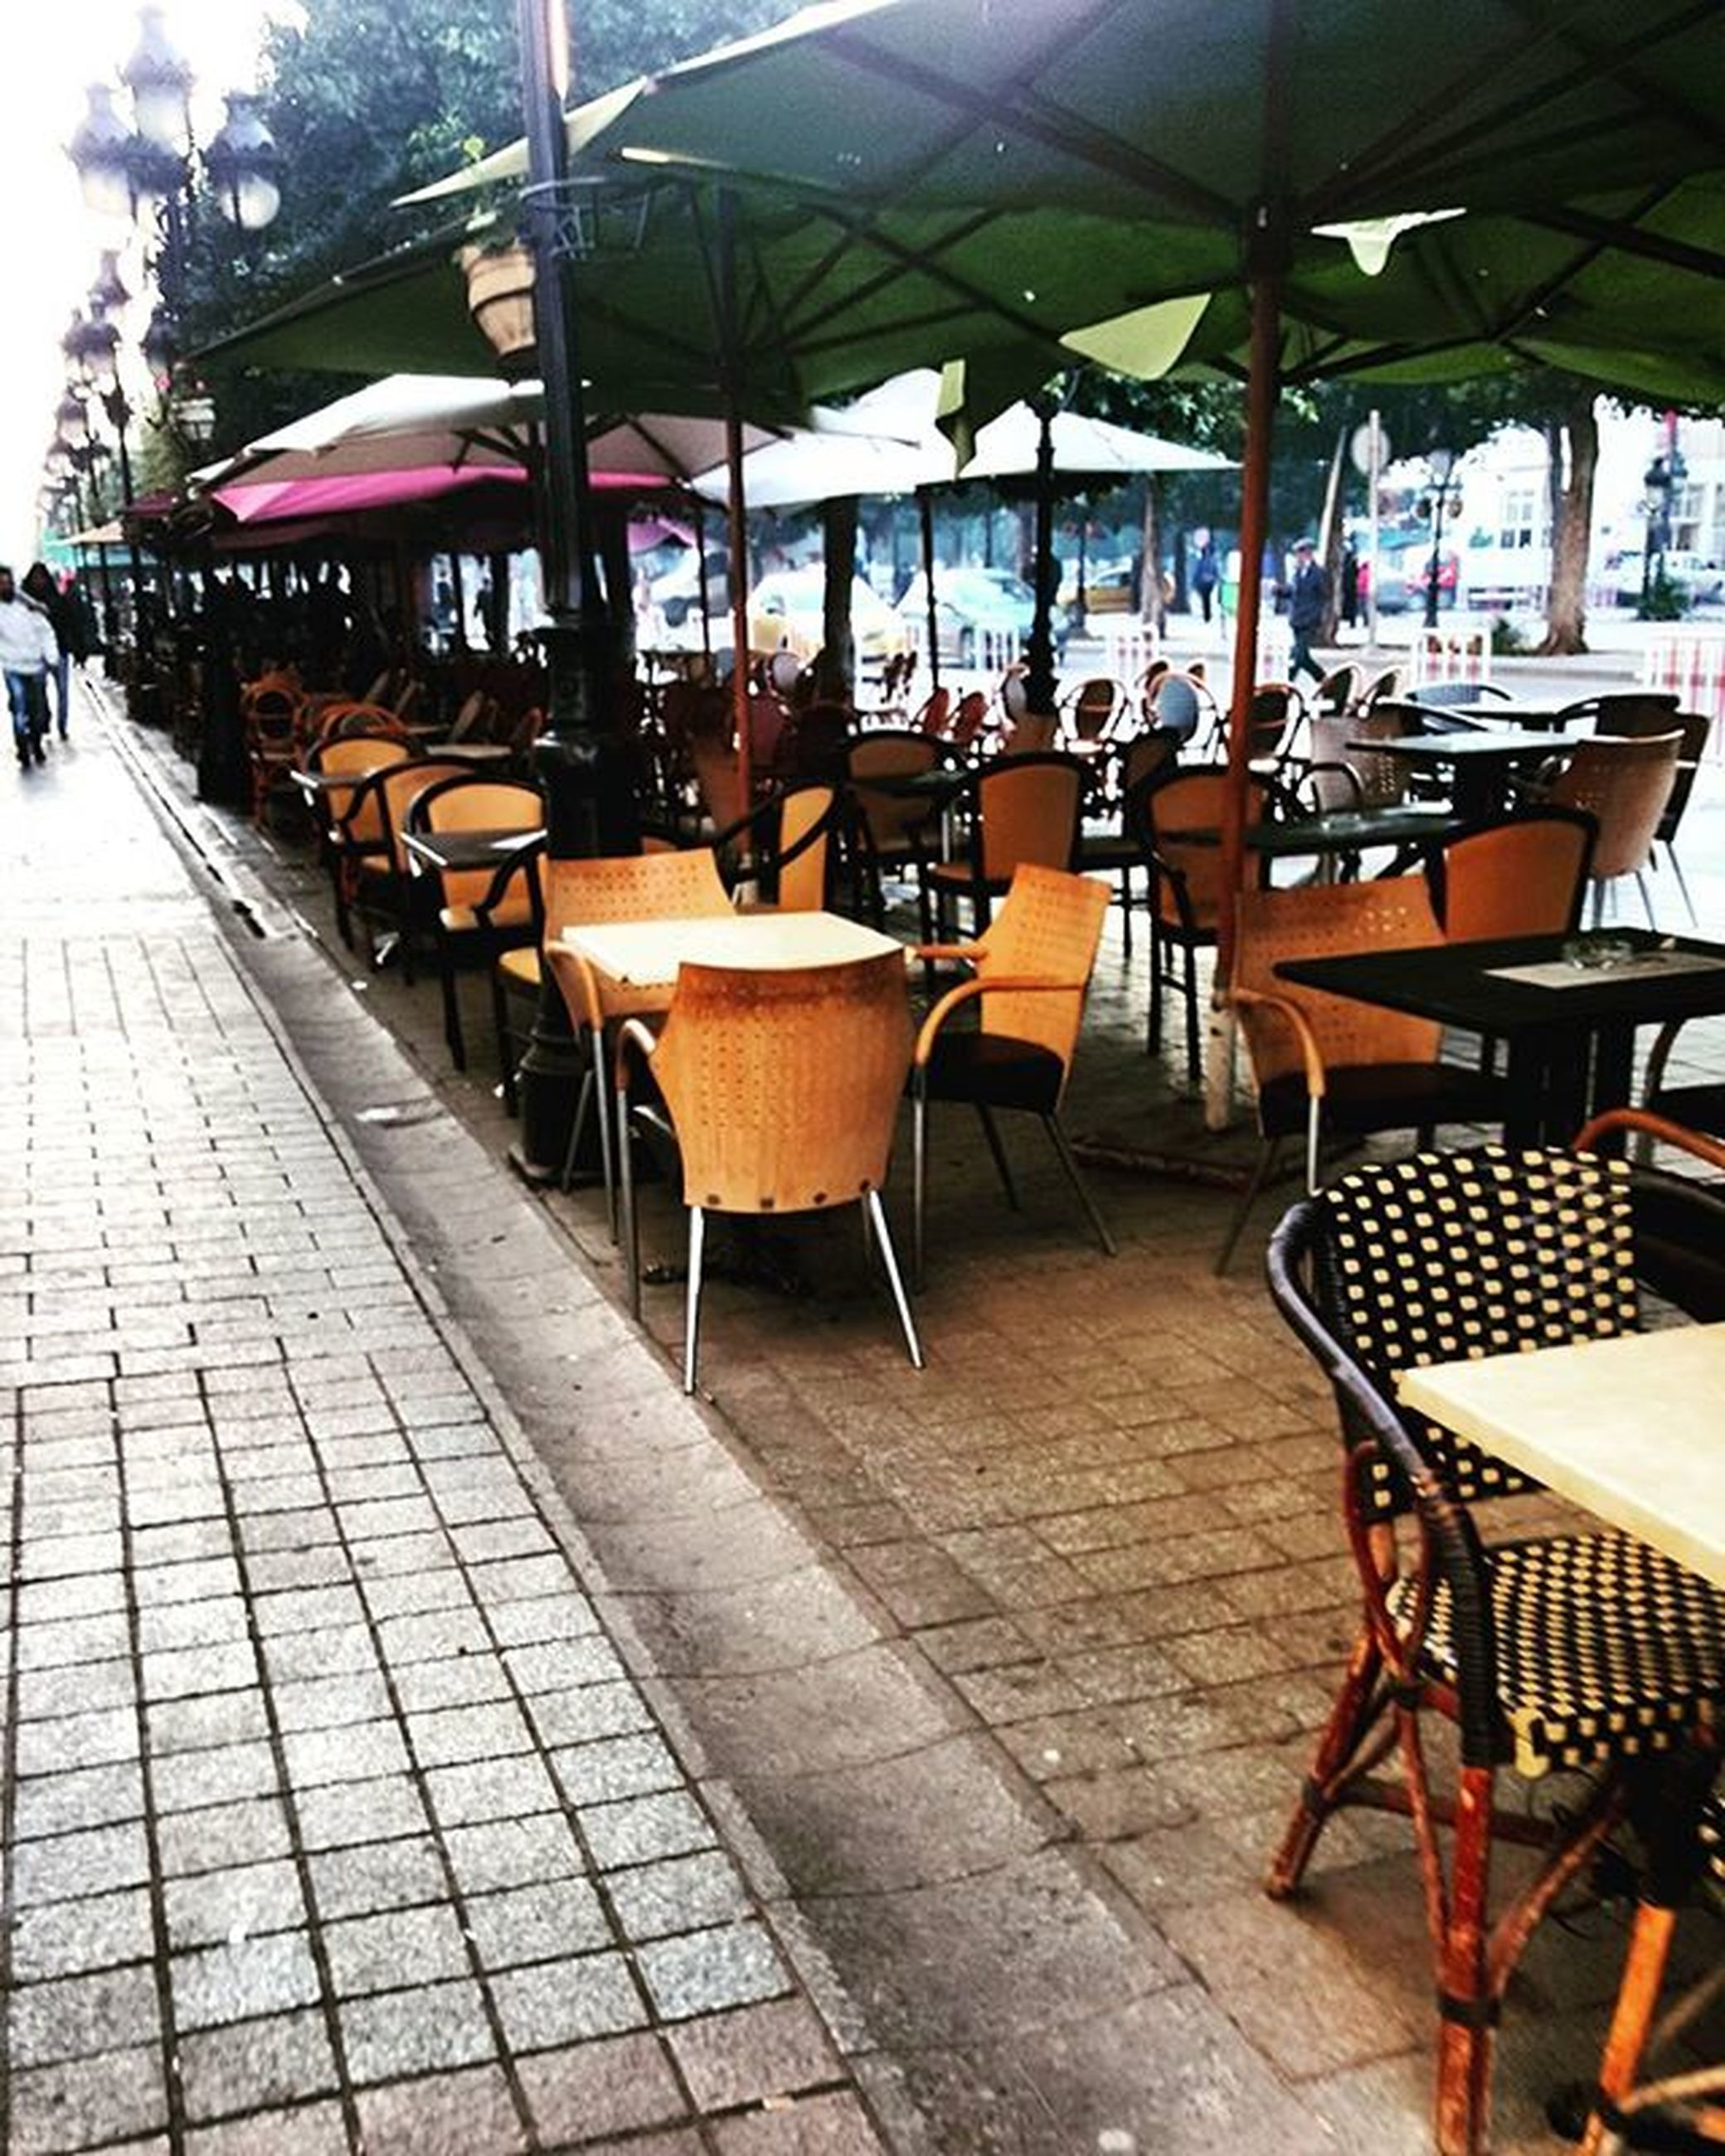 chair, table, restaurant, sidewalk cafe, empty, cafe, absence, incidental people, indoors, place setting, architecture, built structure, arrangement, seat, in a row, food and drink industry, sunlight, day, furniture, building exterior